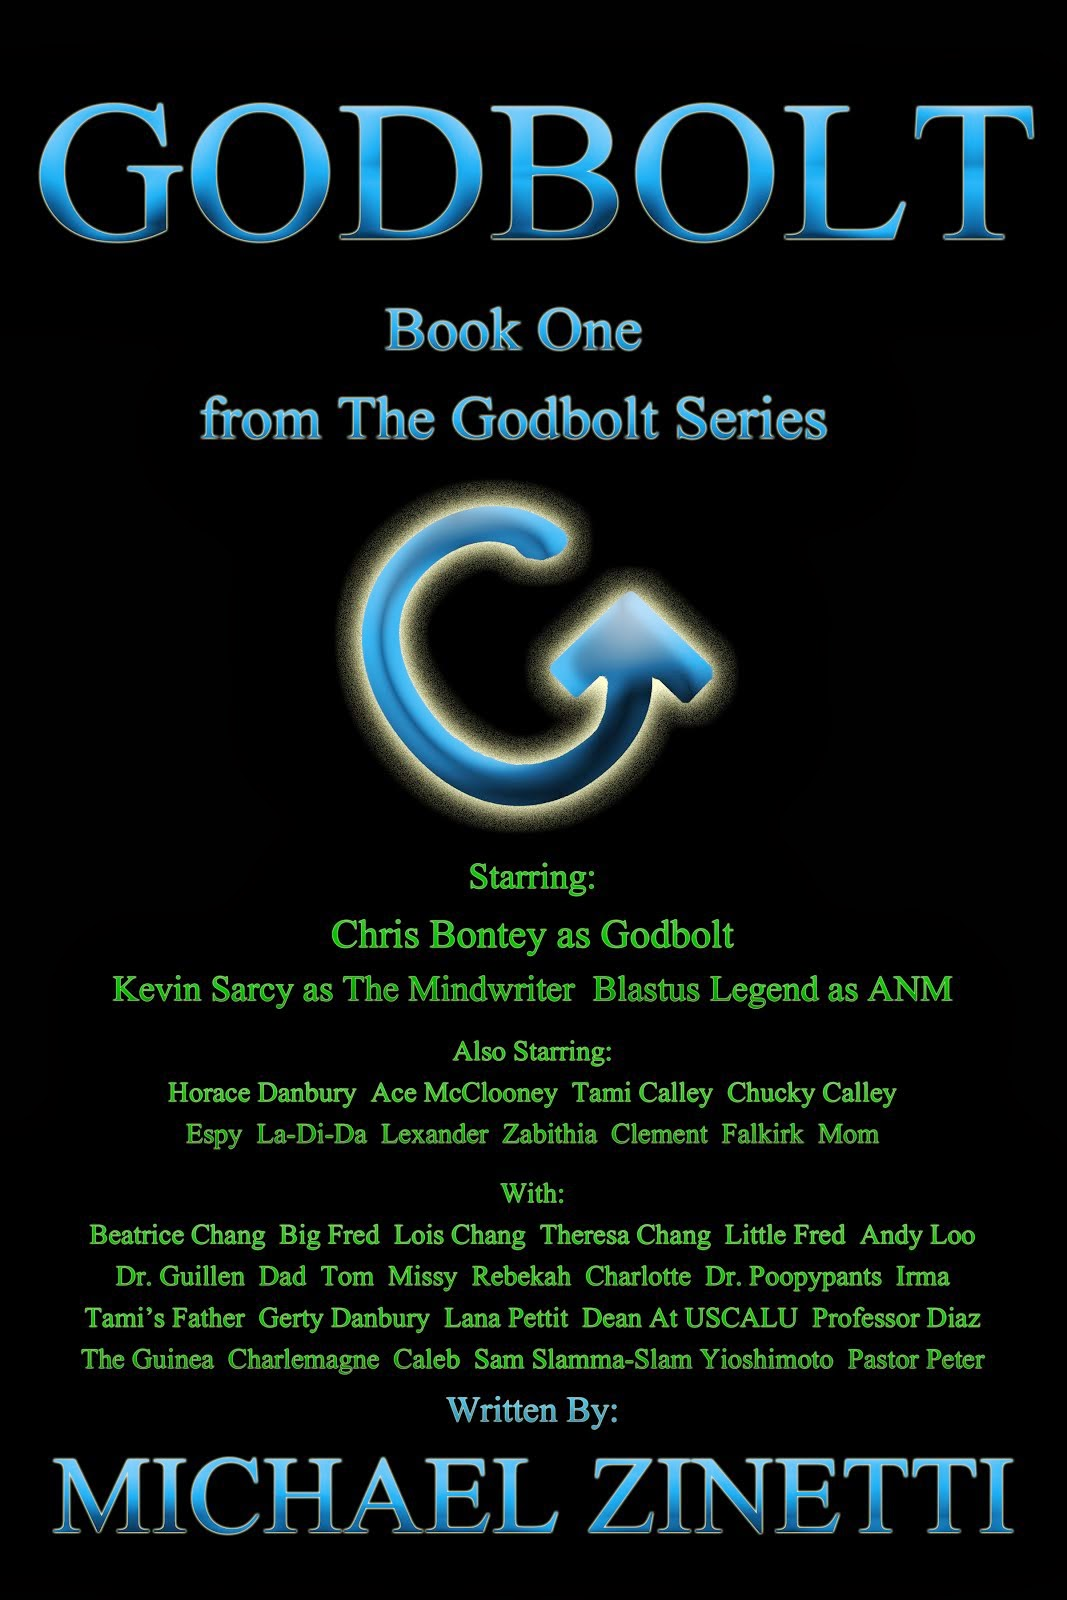 Godbolt: Book One From The Godbolt Series